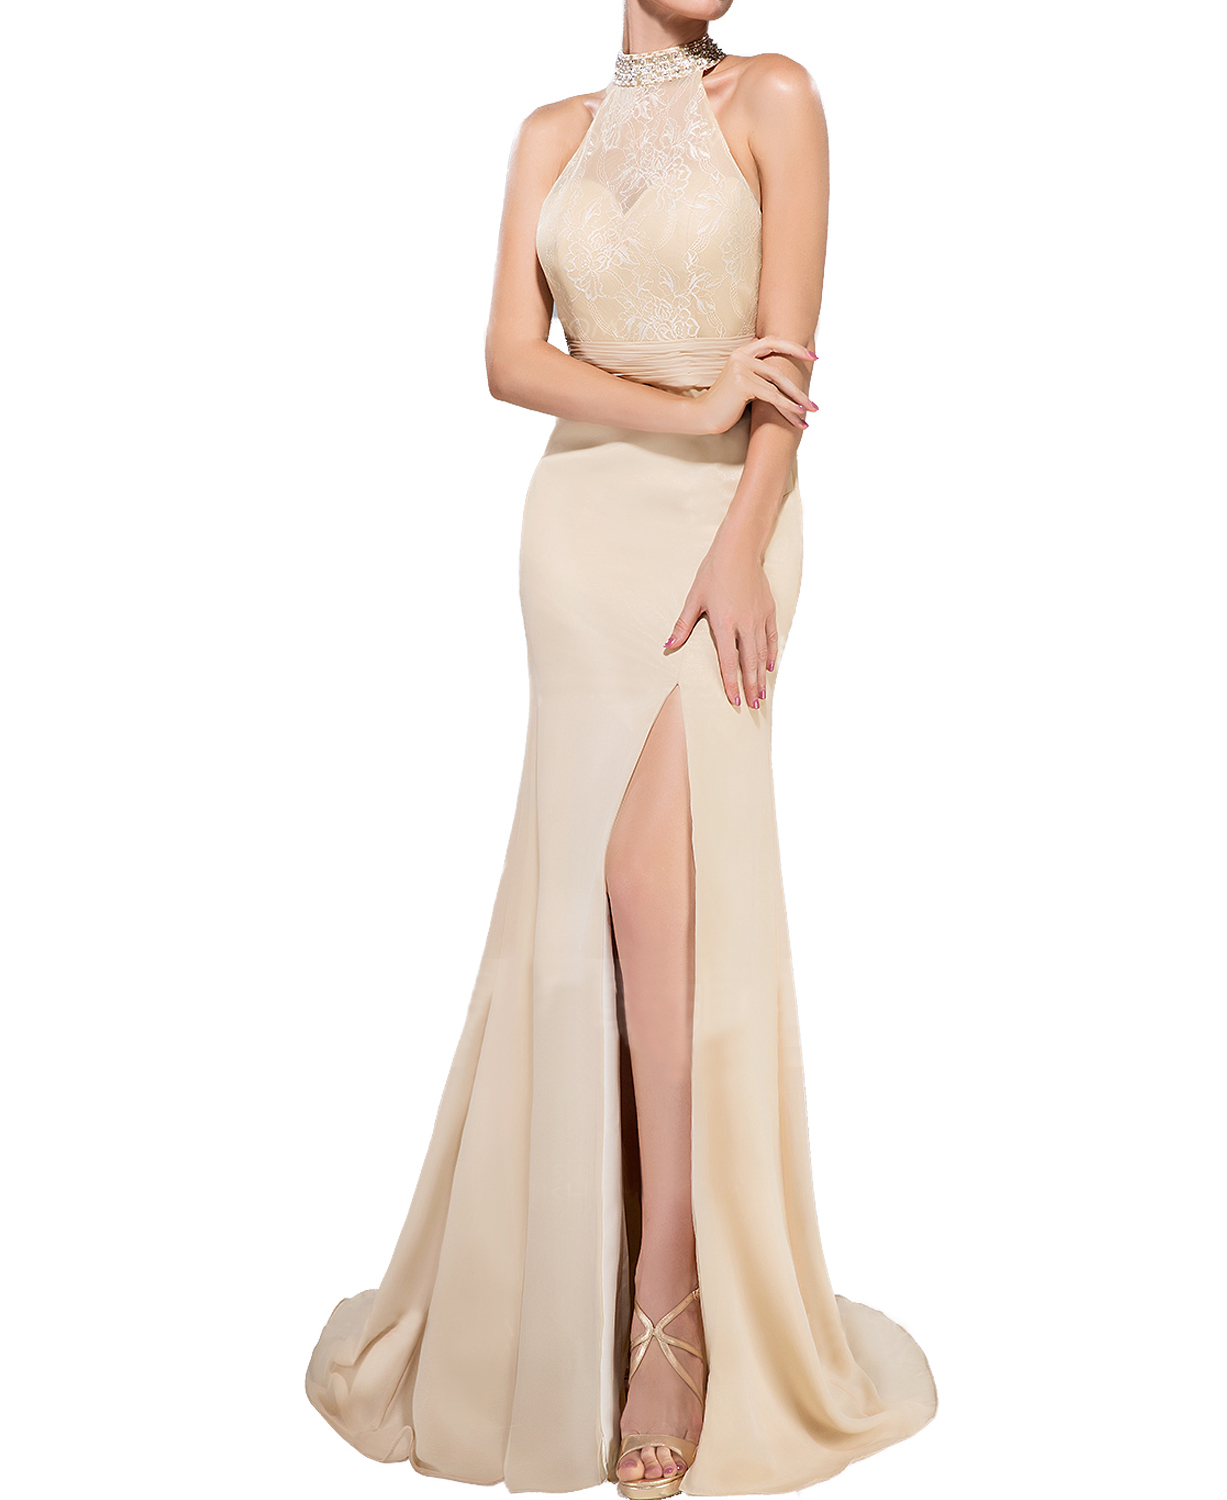 D257 Trumpet Mermaid High Neck Sweep Train Chiffon Lace Evening Dress With Ruffle Beading Sequins Split Fronthalter Neck Lace Champagne Mermaid Prom